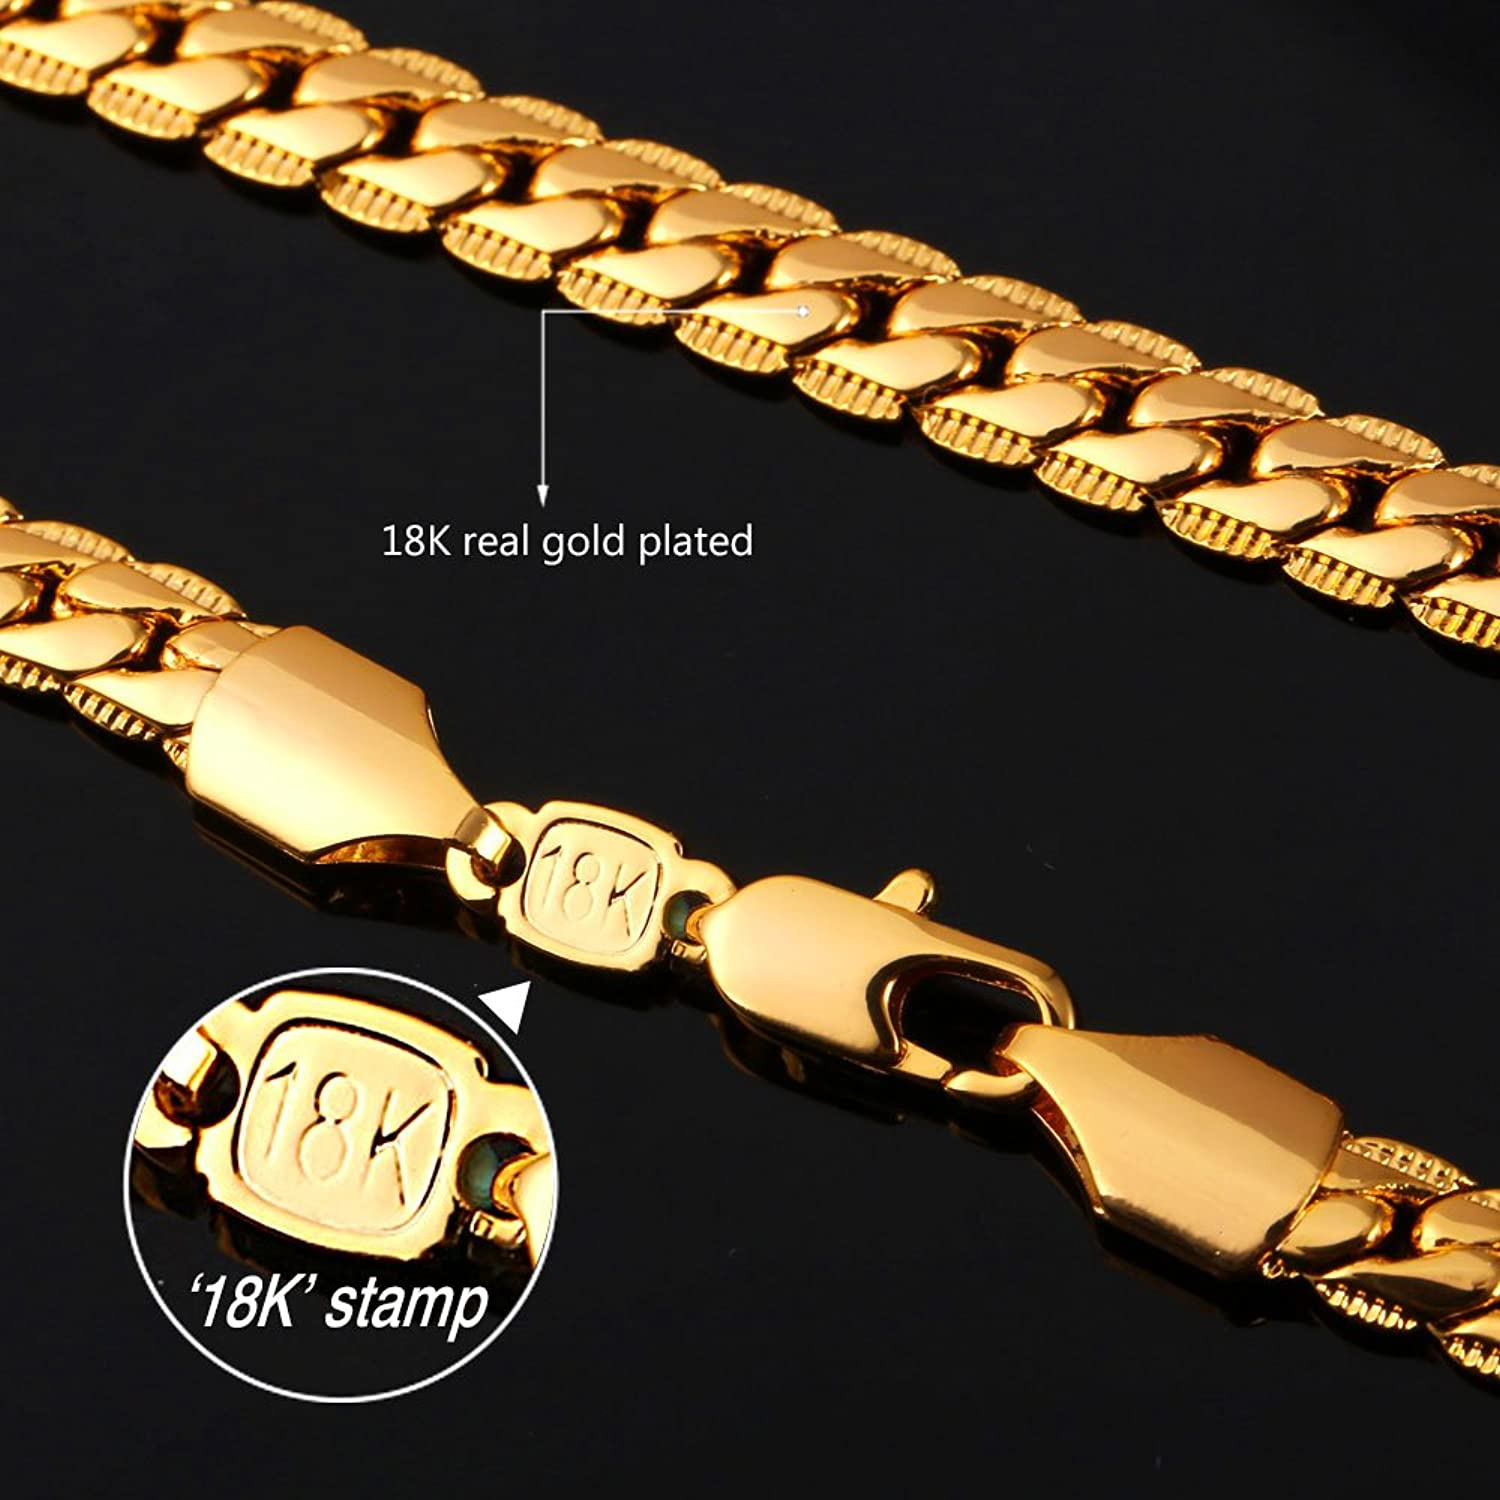 U7 Men Jewelry With 18K Stamp Hip Hop Snake Chain 6MM Wide 18K Gold